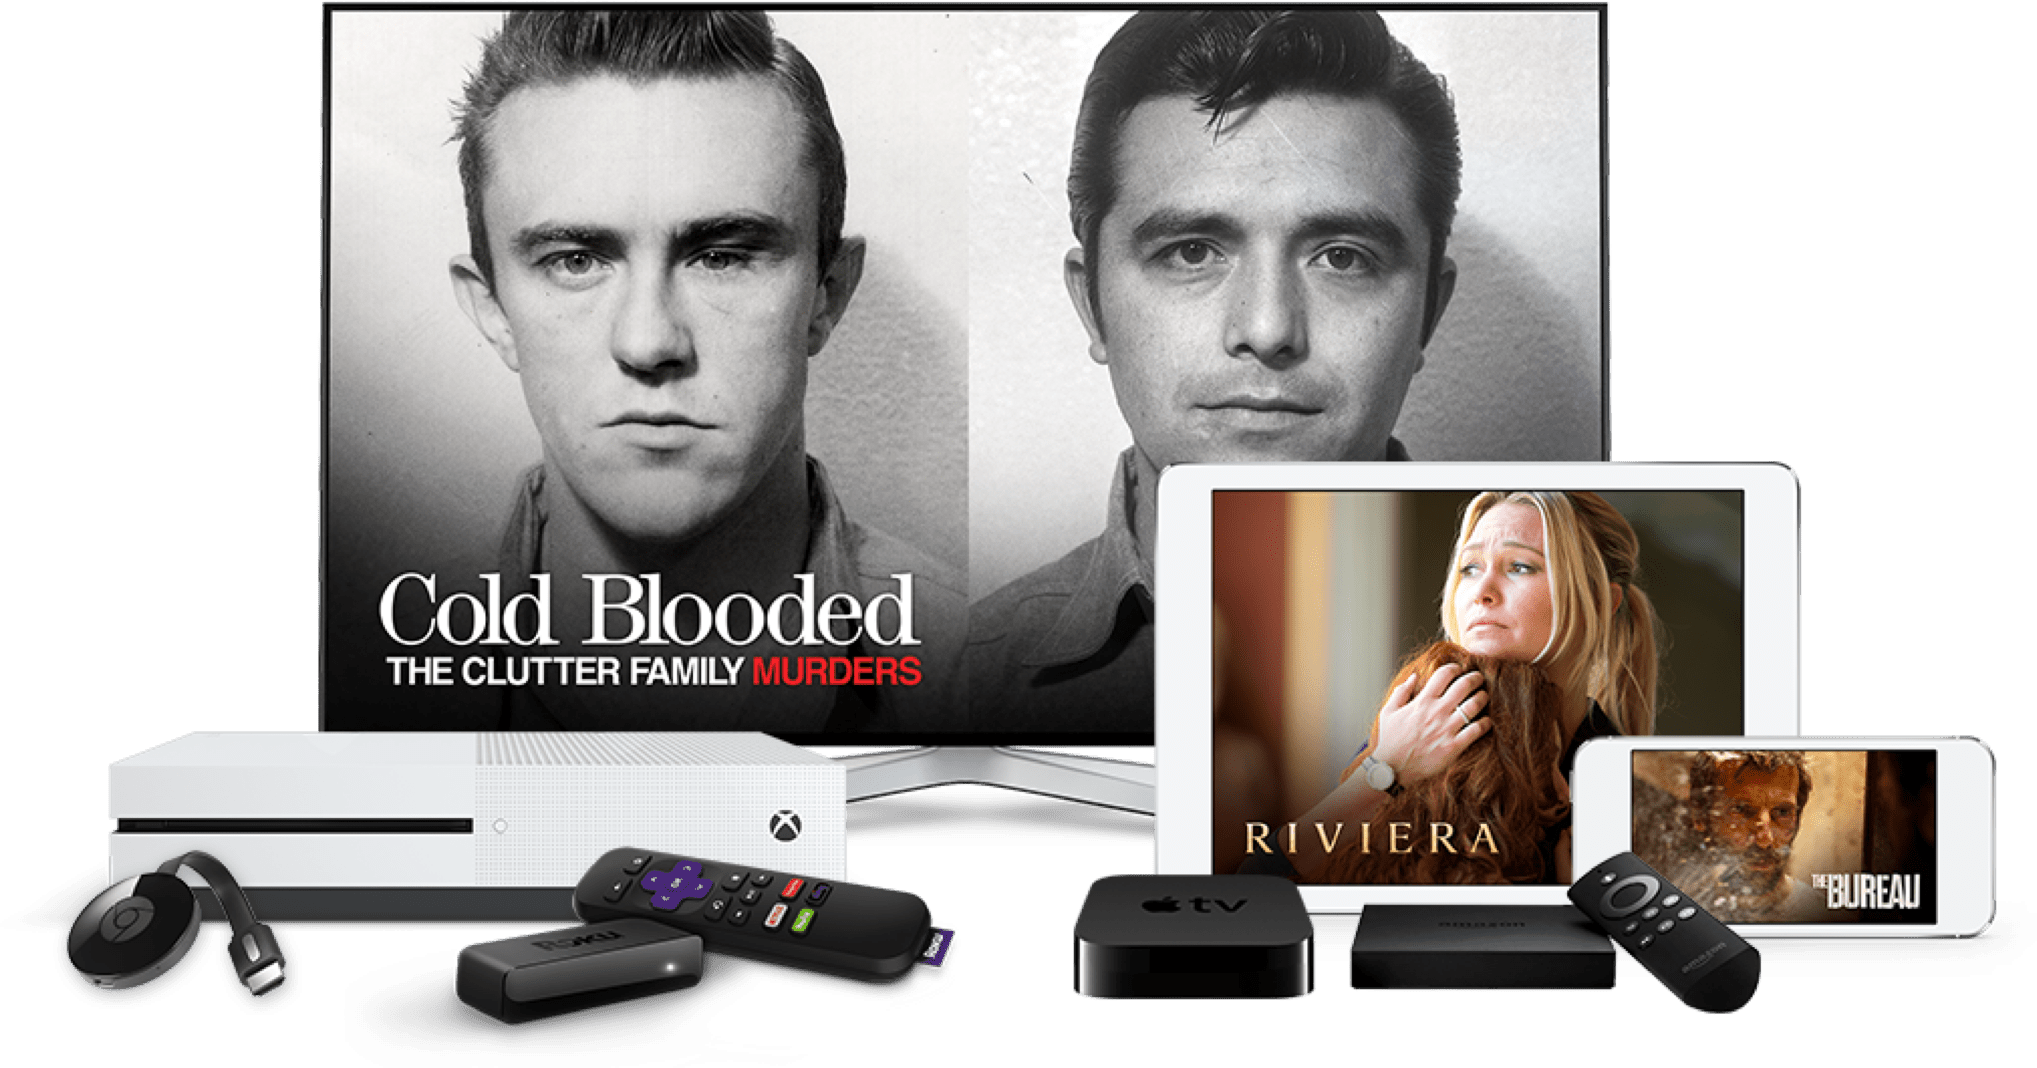 Available on Apple App Store, Amazon Fire TV, Roku, Google Play, and Xbox One.